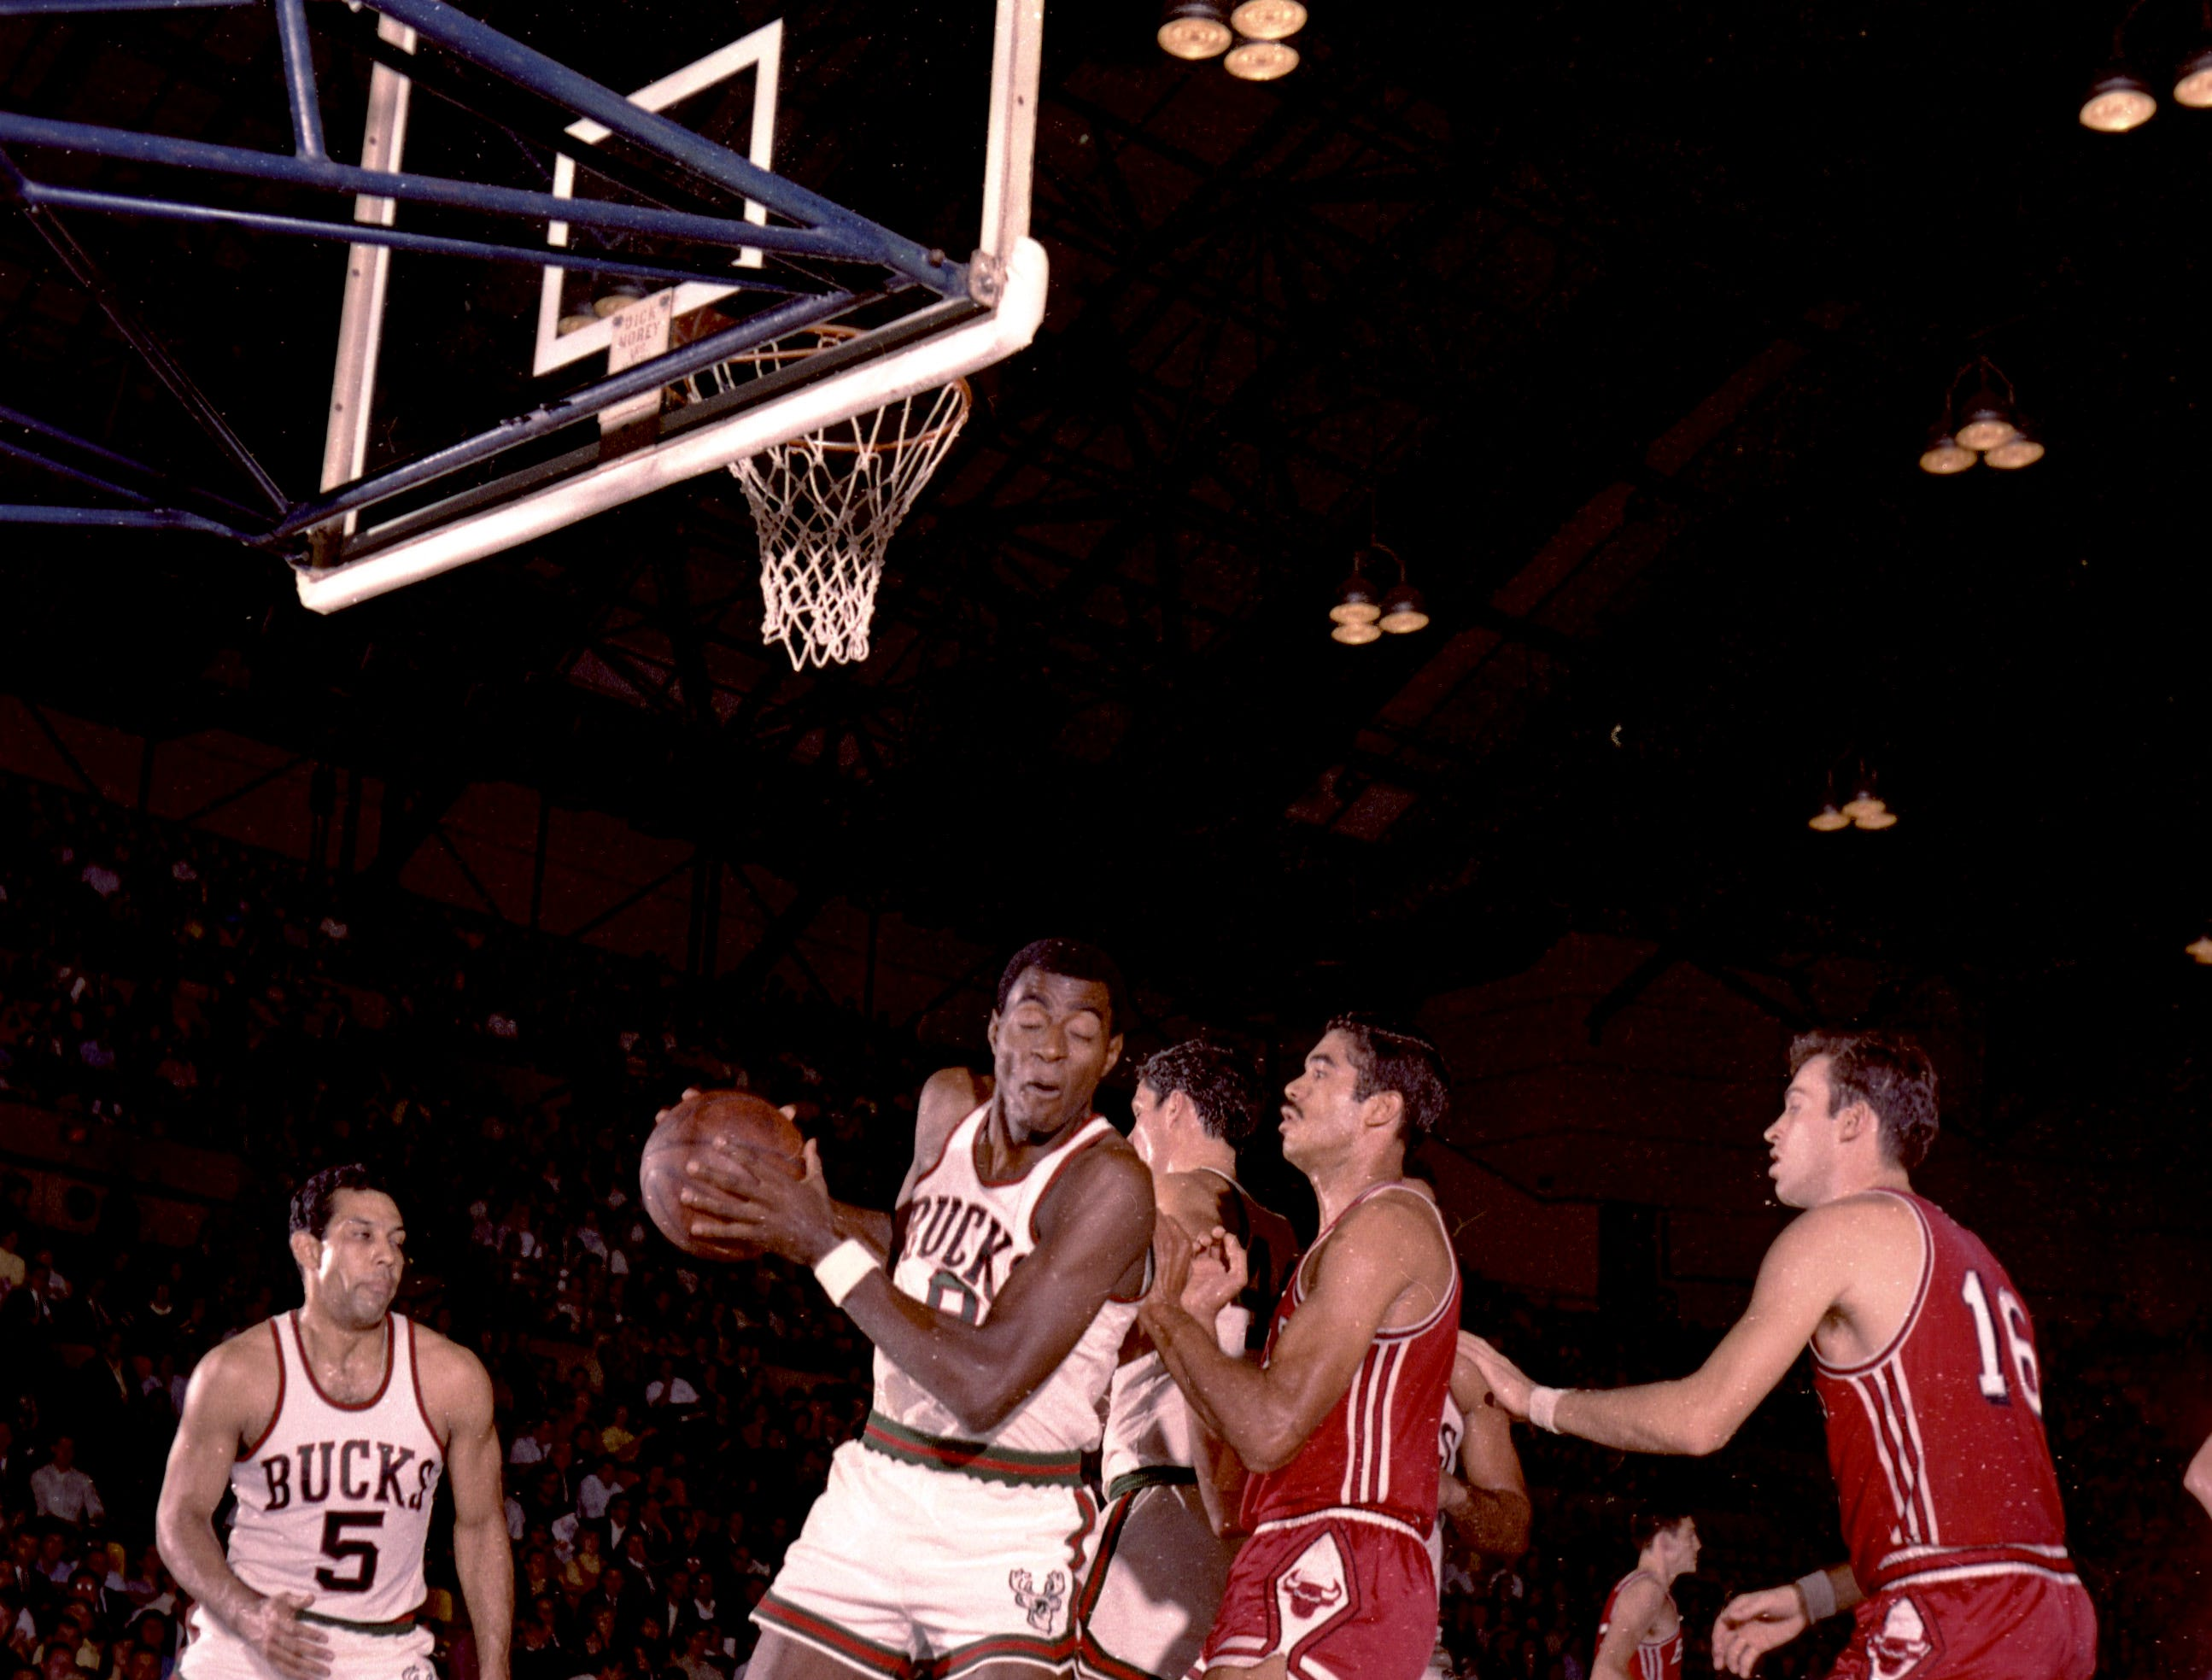 Milwaukee Bucks forward Bob Love (8) grabs a rebound while teammate Guy Rodgers (5) looks on during the first Milwaukee Bucks regular-season game at the Milwaukee Arena on Oct. 16, 1968. The Chicago Bulls defeated the Bucks, 89-84.